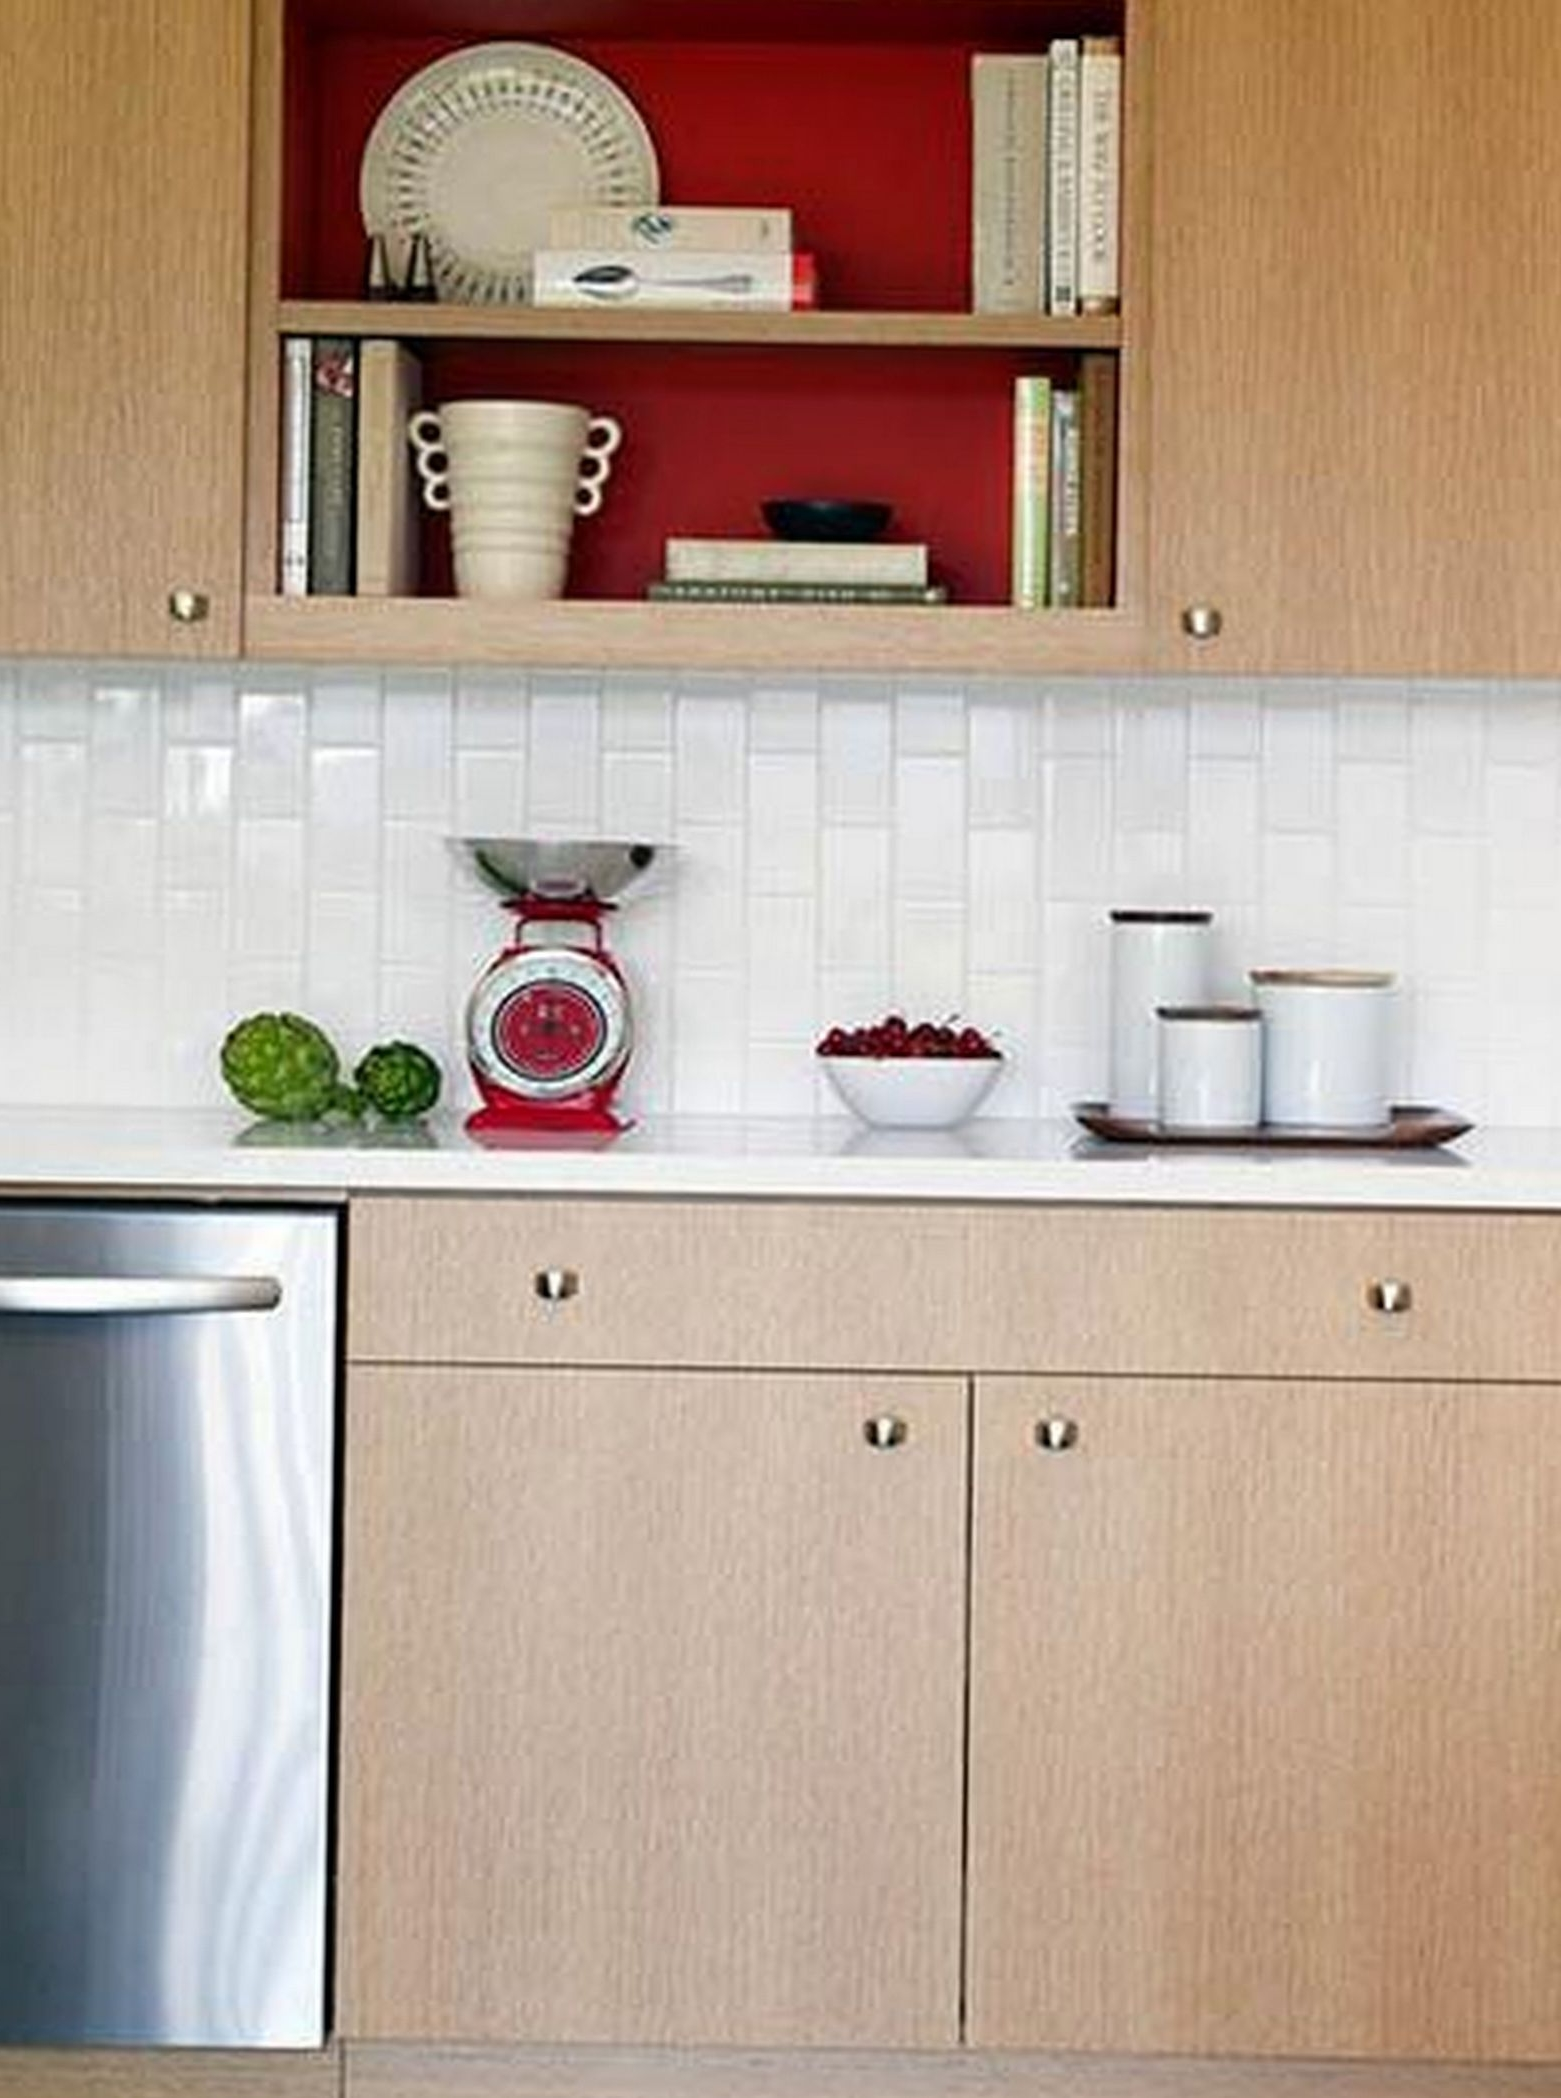 Kitchen Cabinets With Decorative Hardware Kitchen Furniture (View 21 of 38)